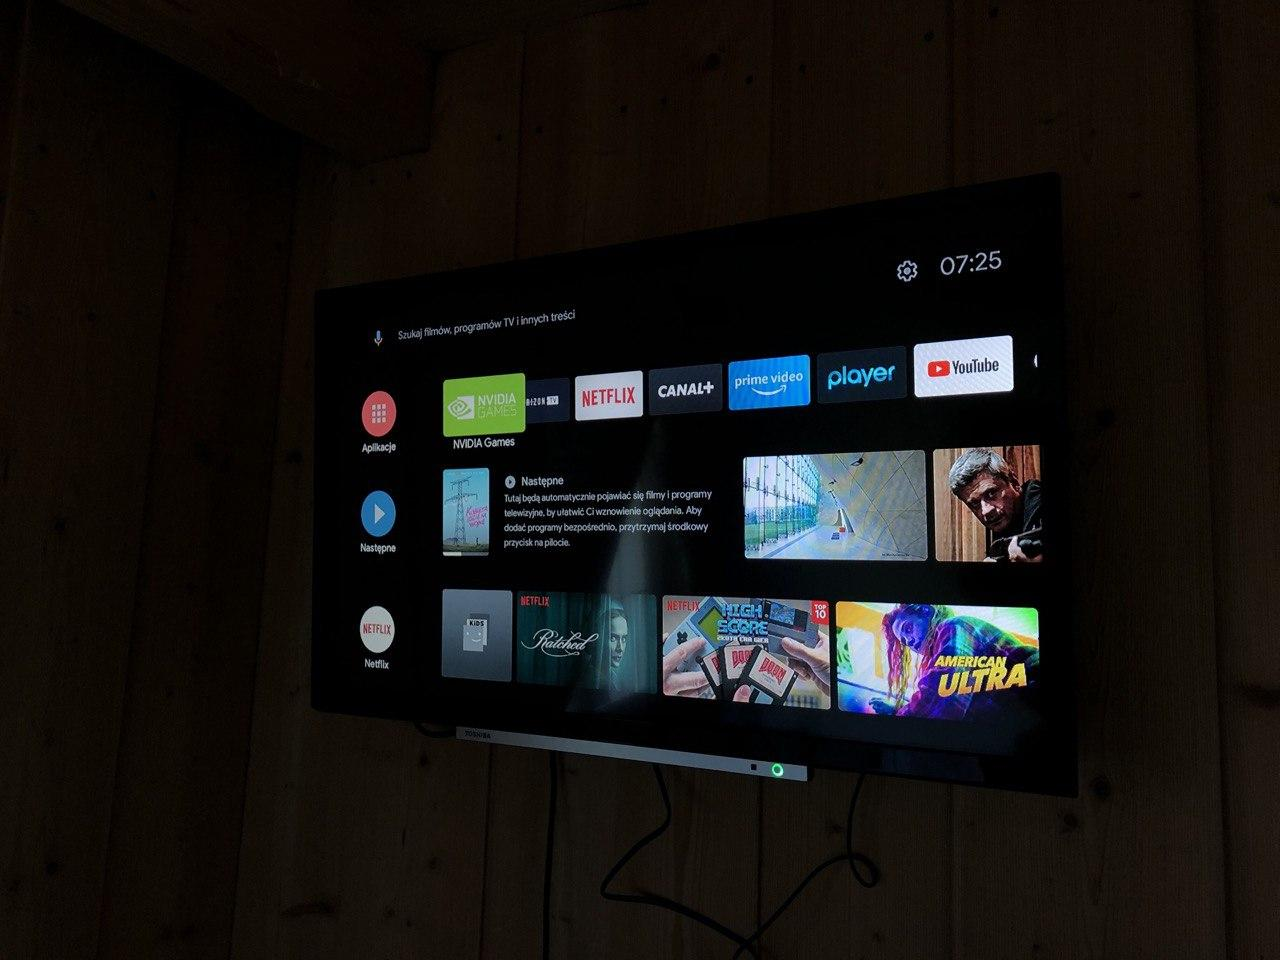 android tv appki vod